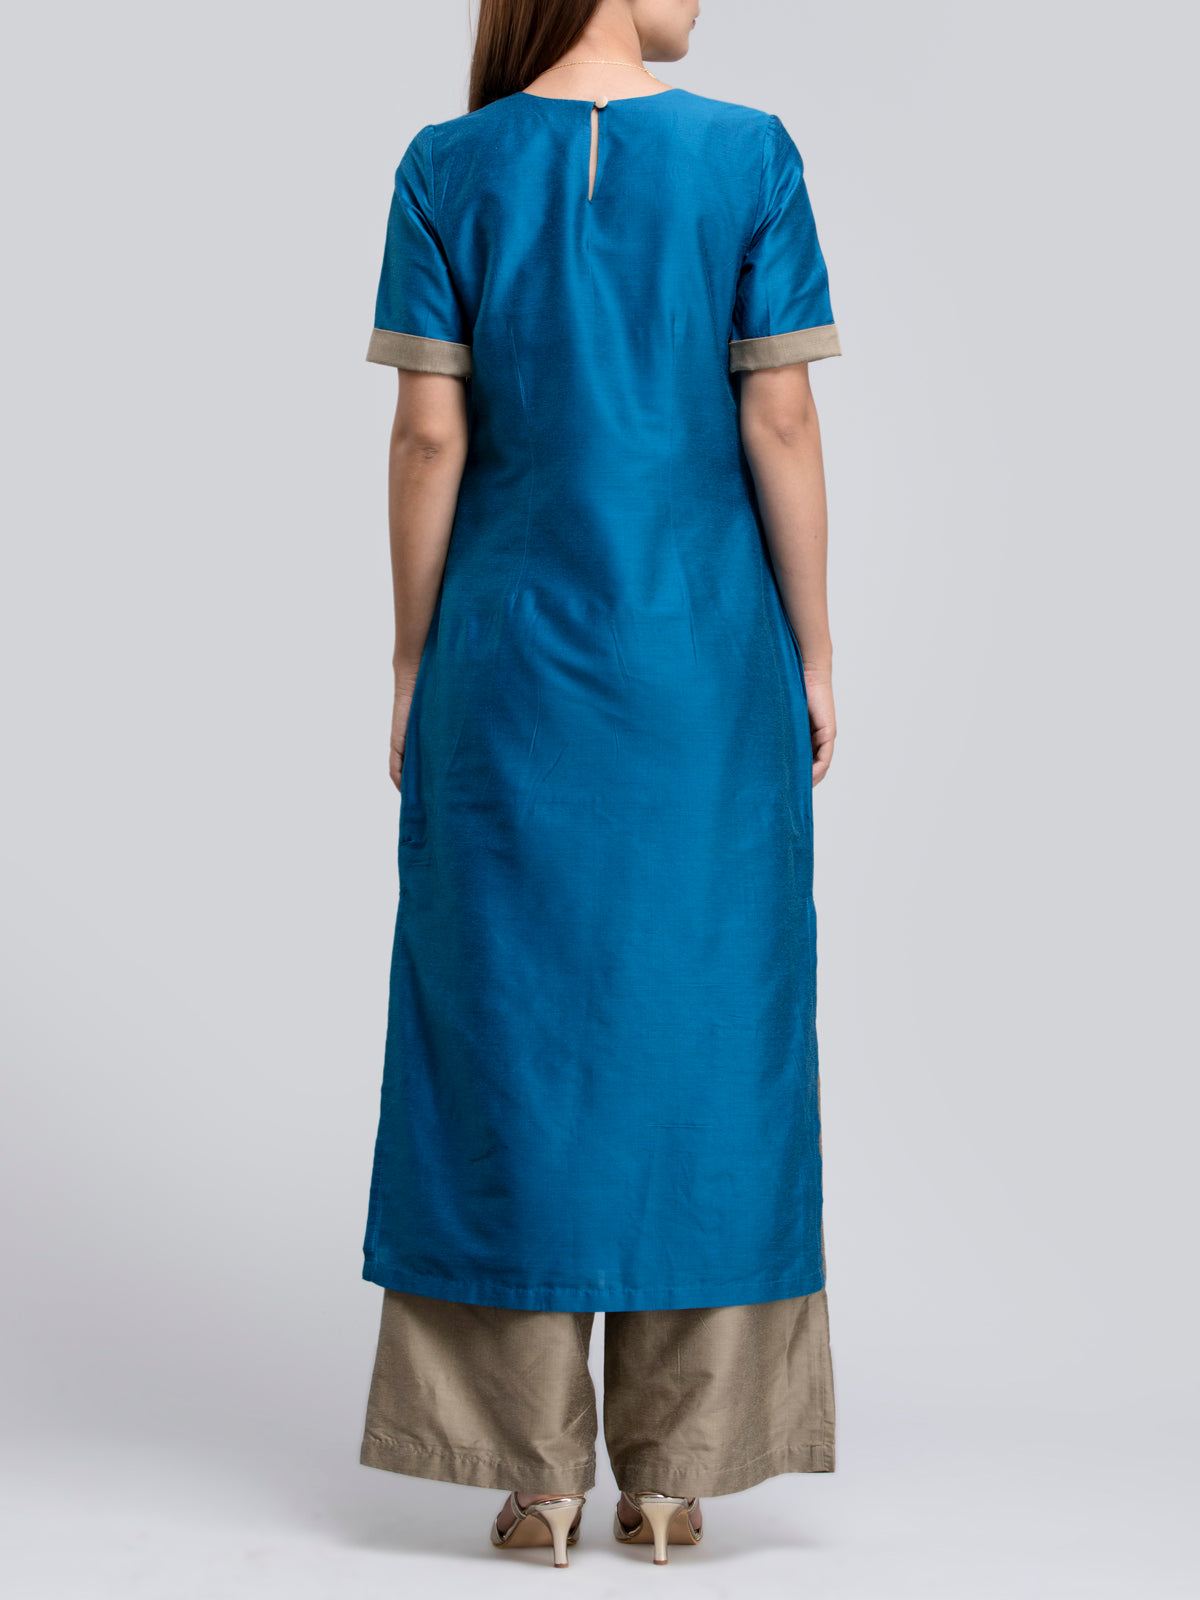 Cotton Silk Colour Block Kurta Dress and Flared Pants Co-ord - Blue and Gold